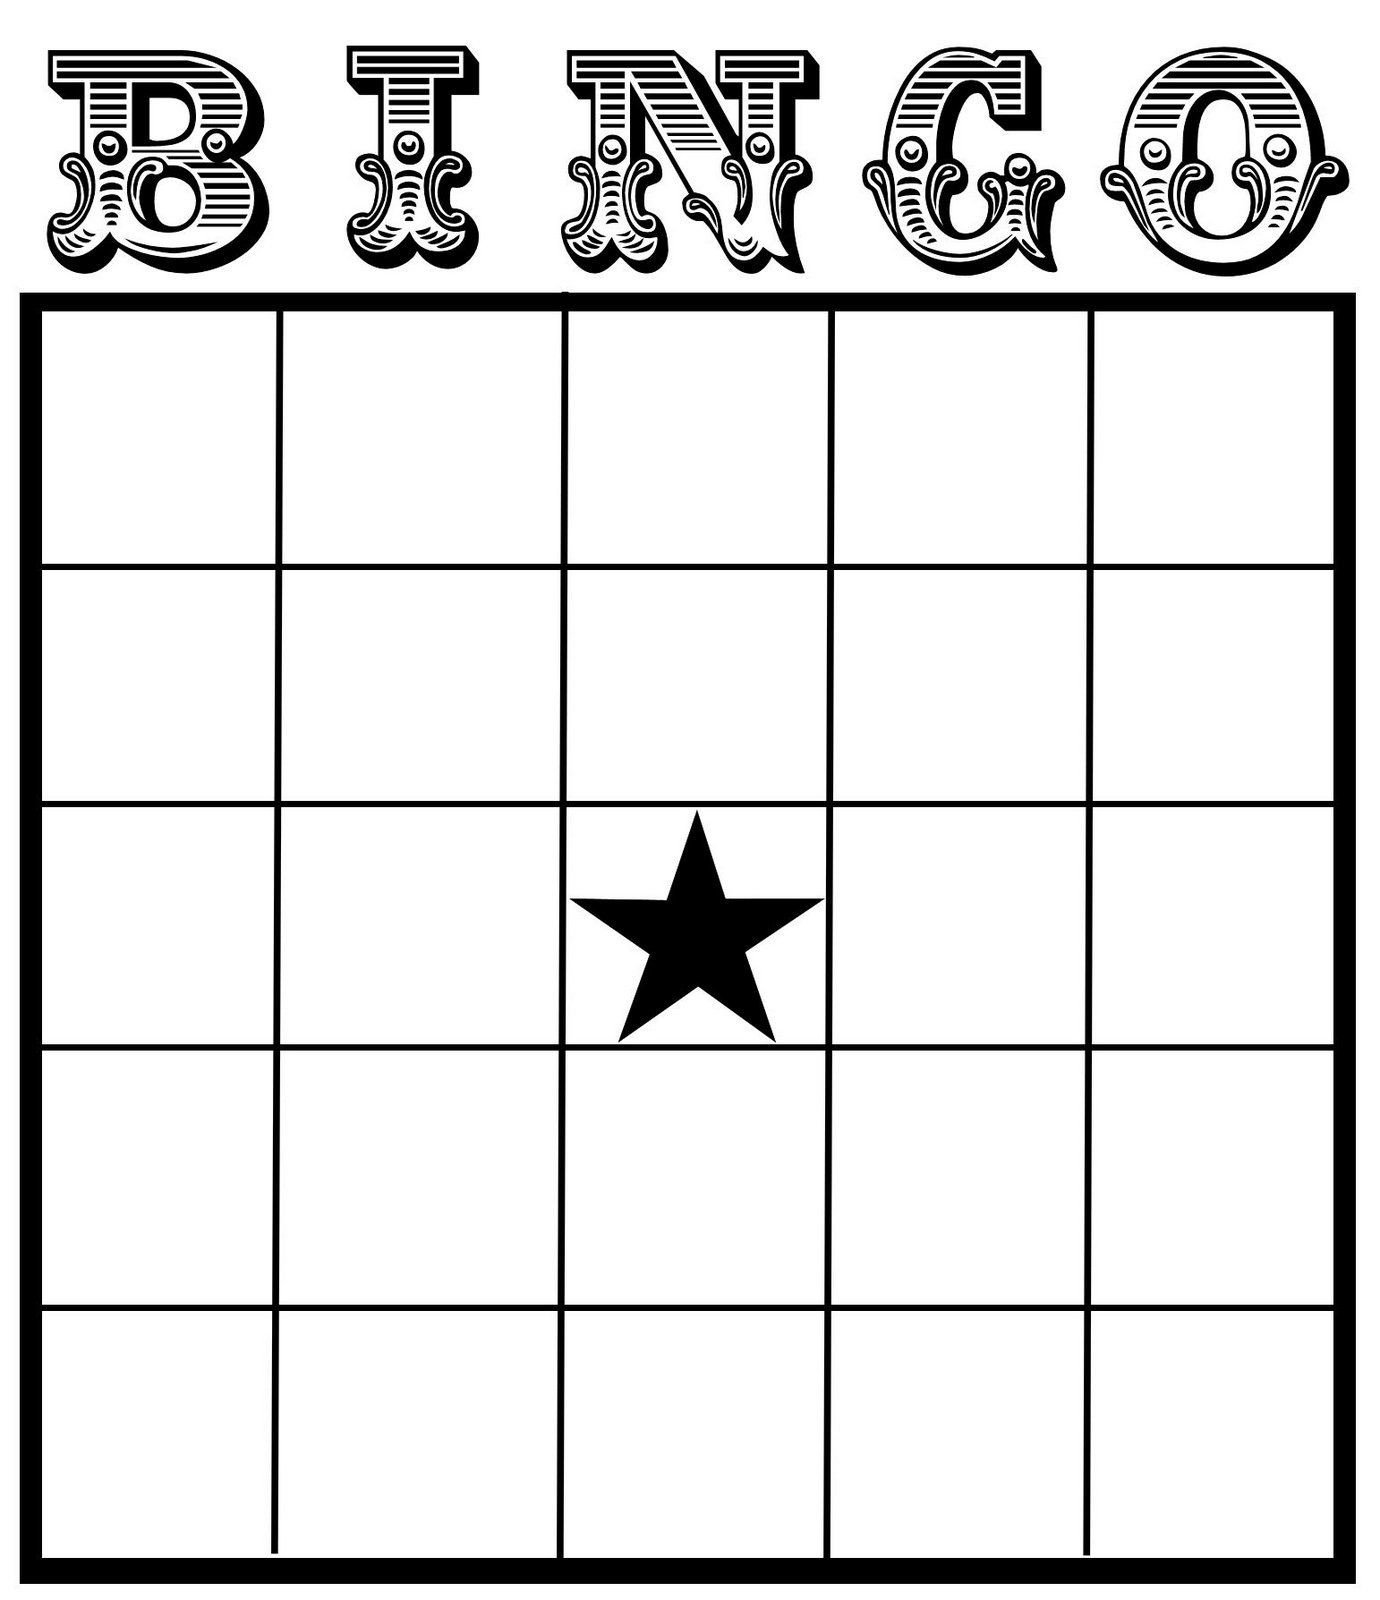 Bingo Card Template Free Christine Zani Bingo Card Printables to